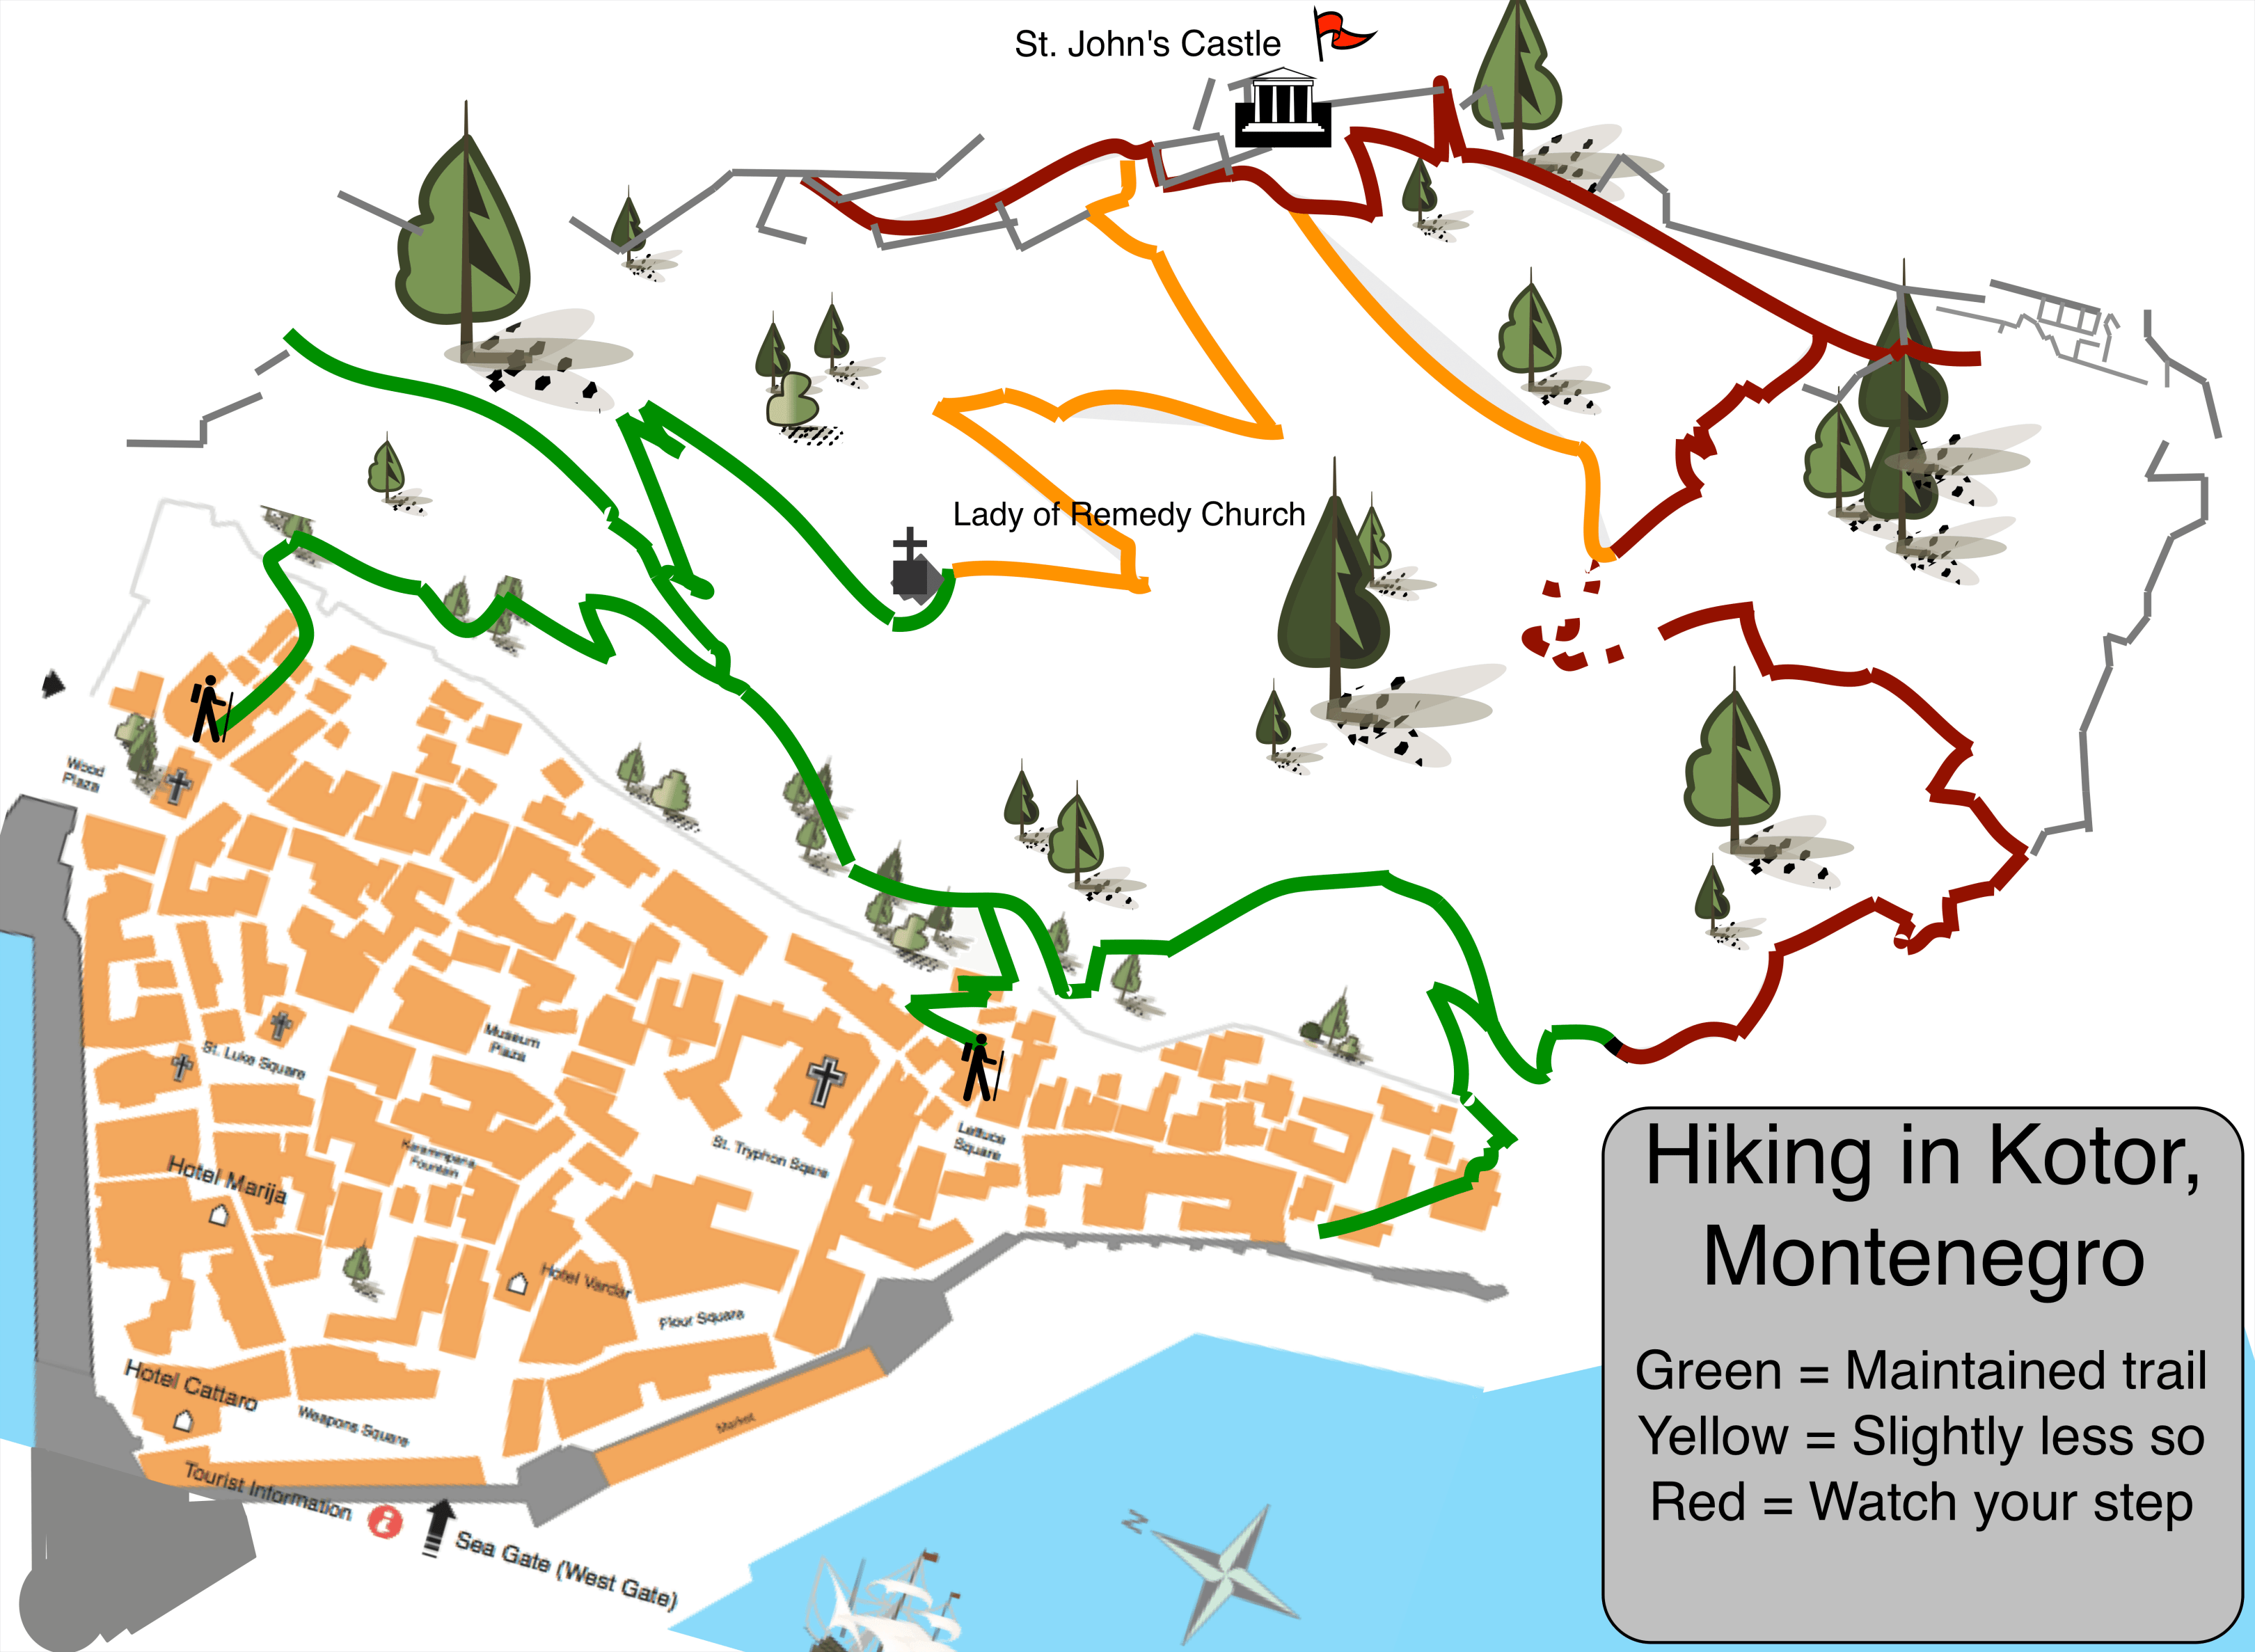 Trail Map of Kotor St. Johns Castle